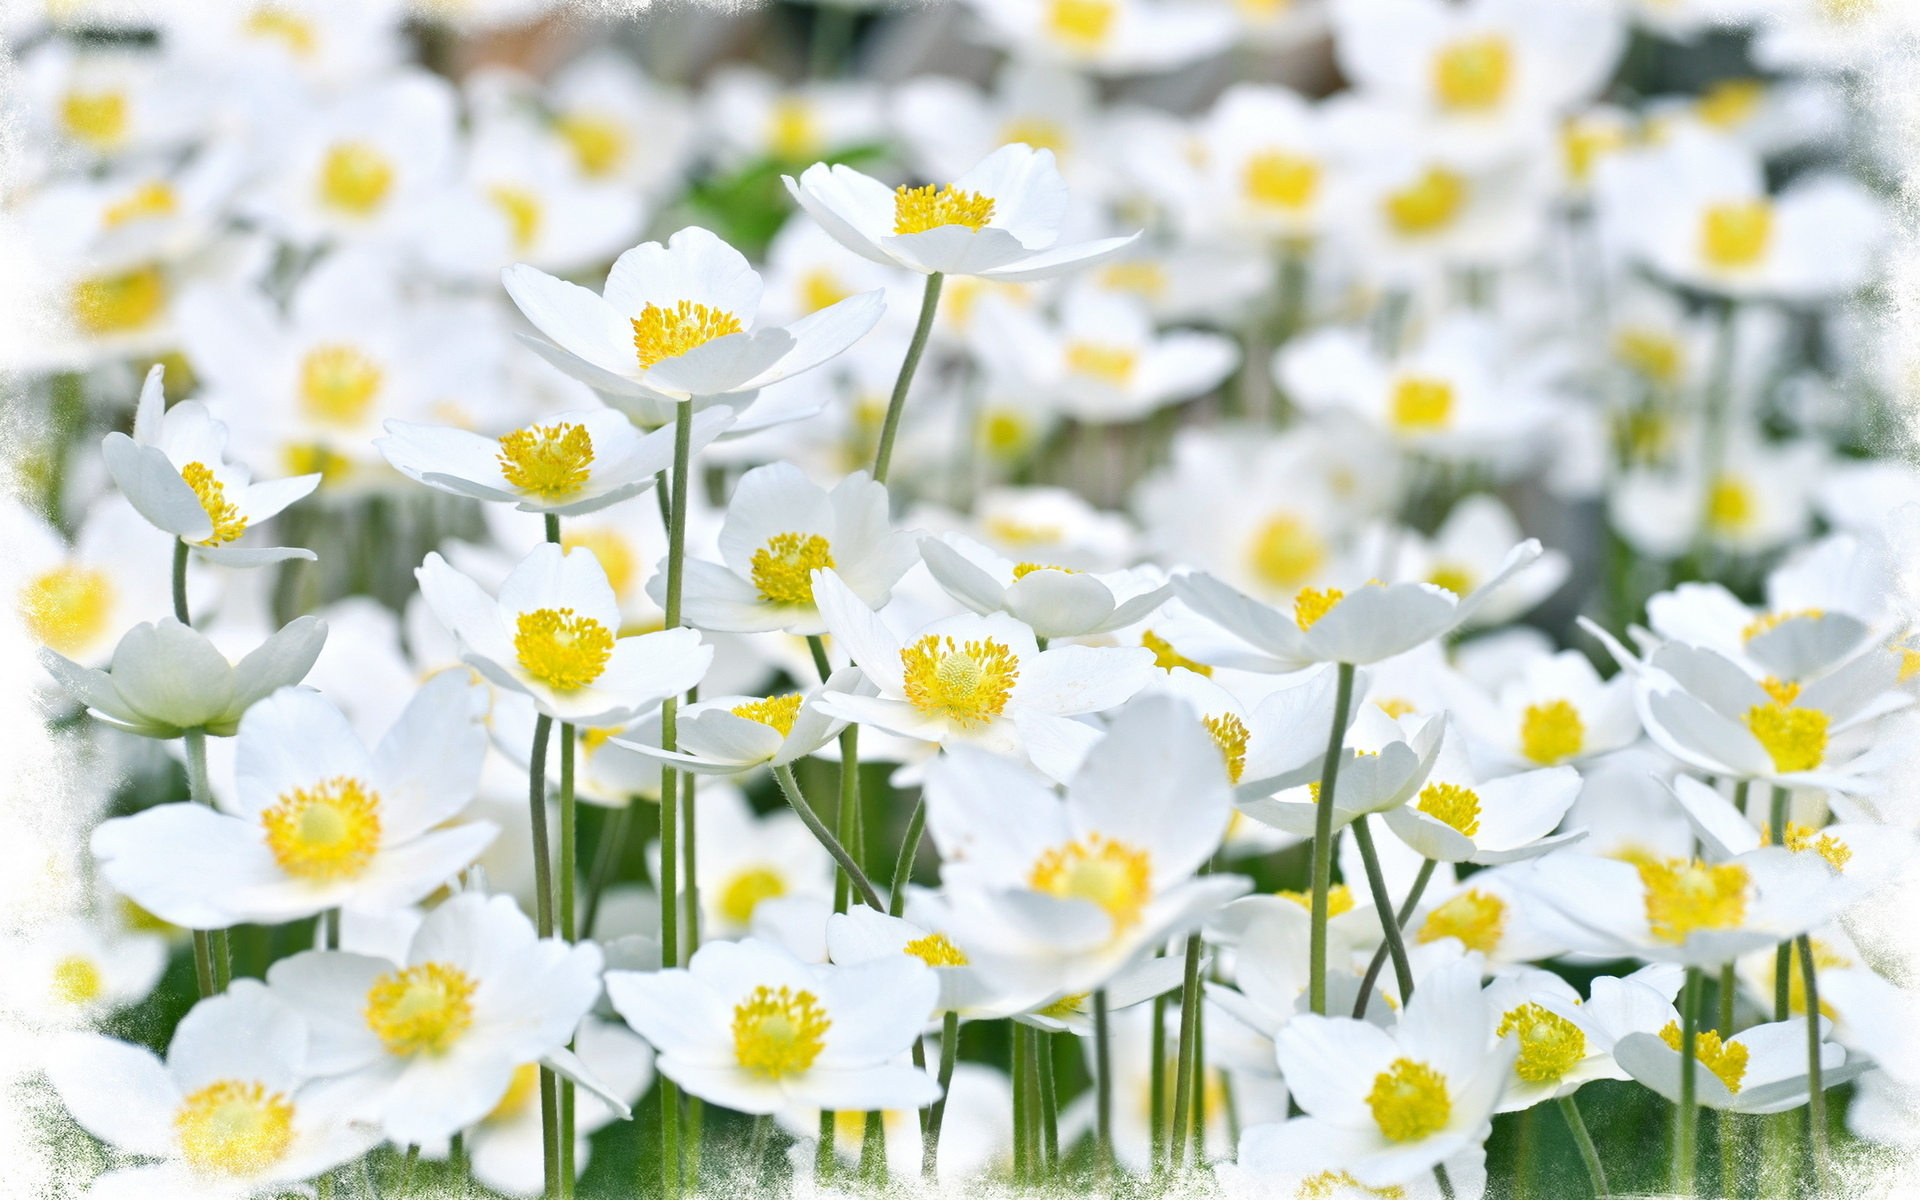 White and yellow flowers choice image flower decoration ideas nature flowers petals plants fields garden bright white yellow nature flowers petals plants fields garden bright mightylinksfo Image collections